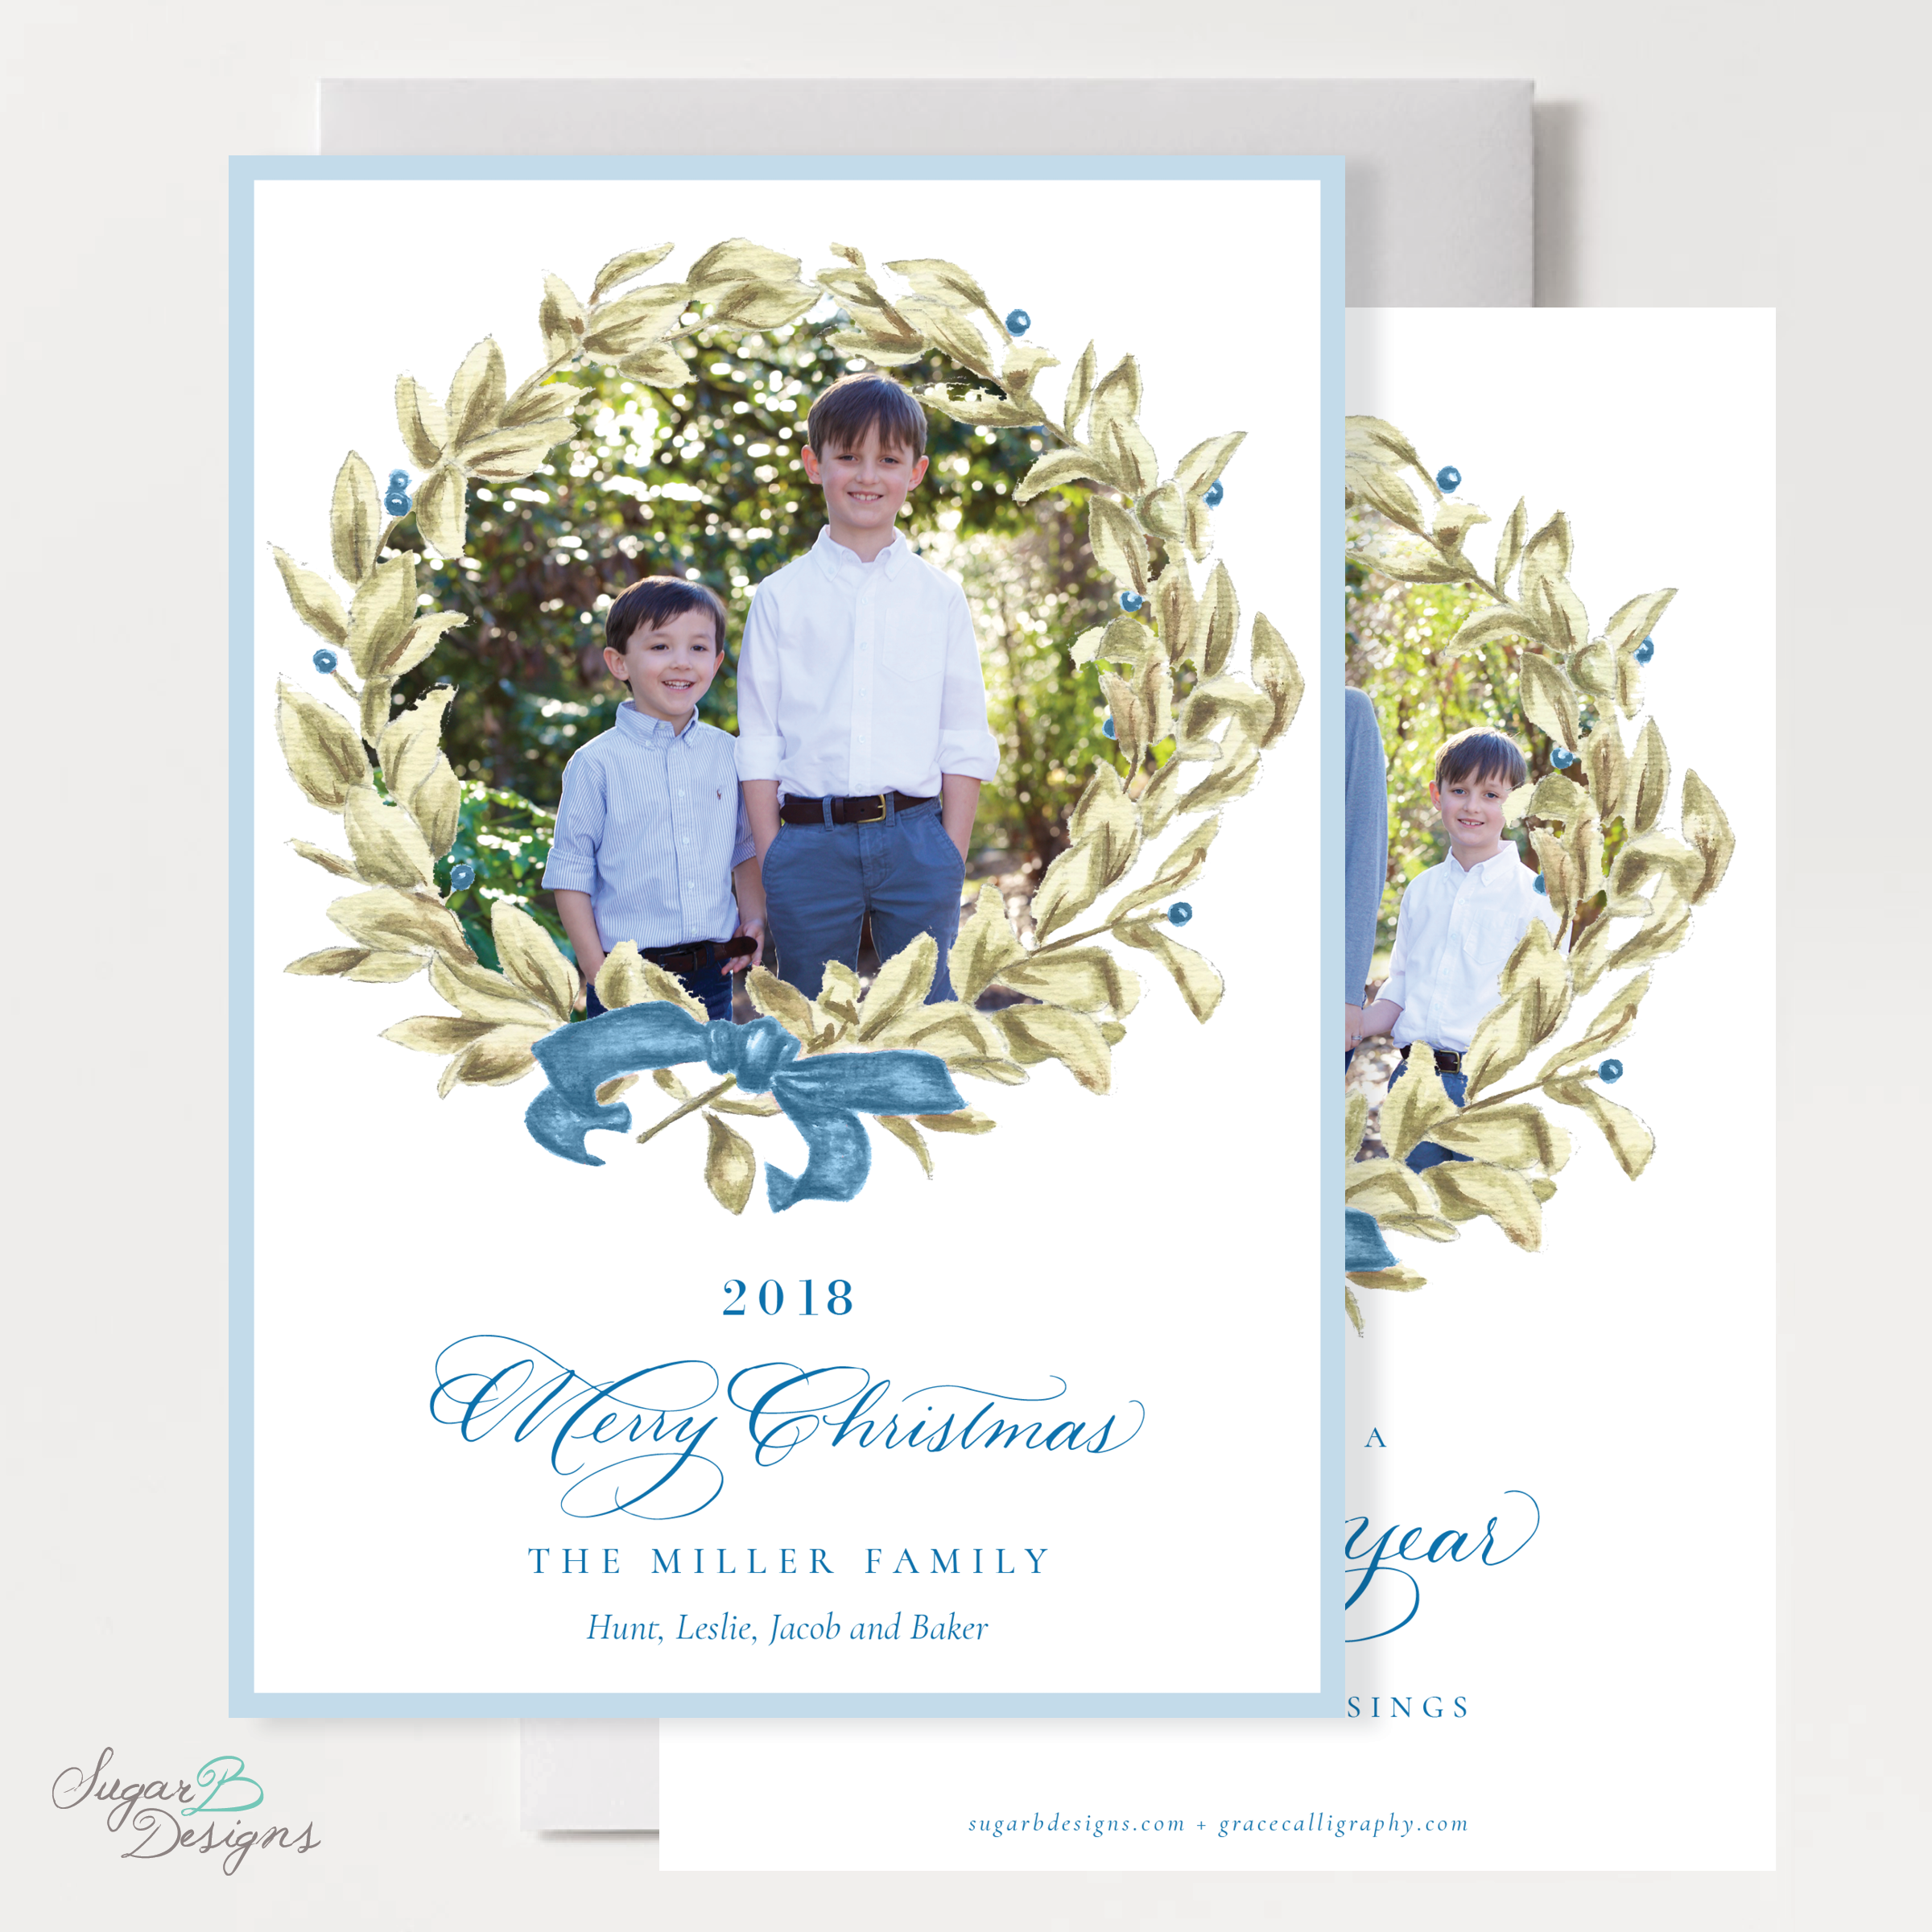 Meryl Wreath Blue Vertical Christmas Card front + back by Sugar B Designs.png